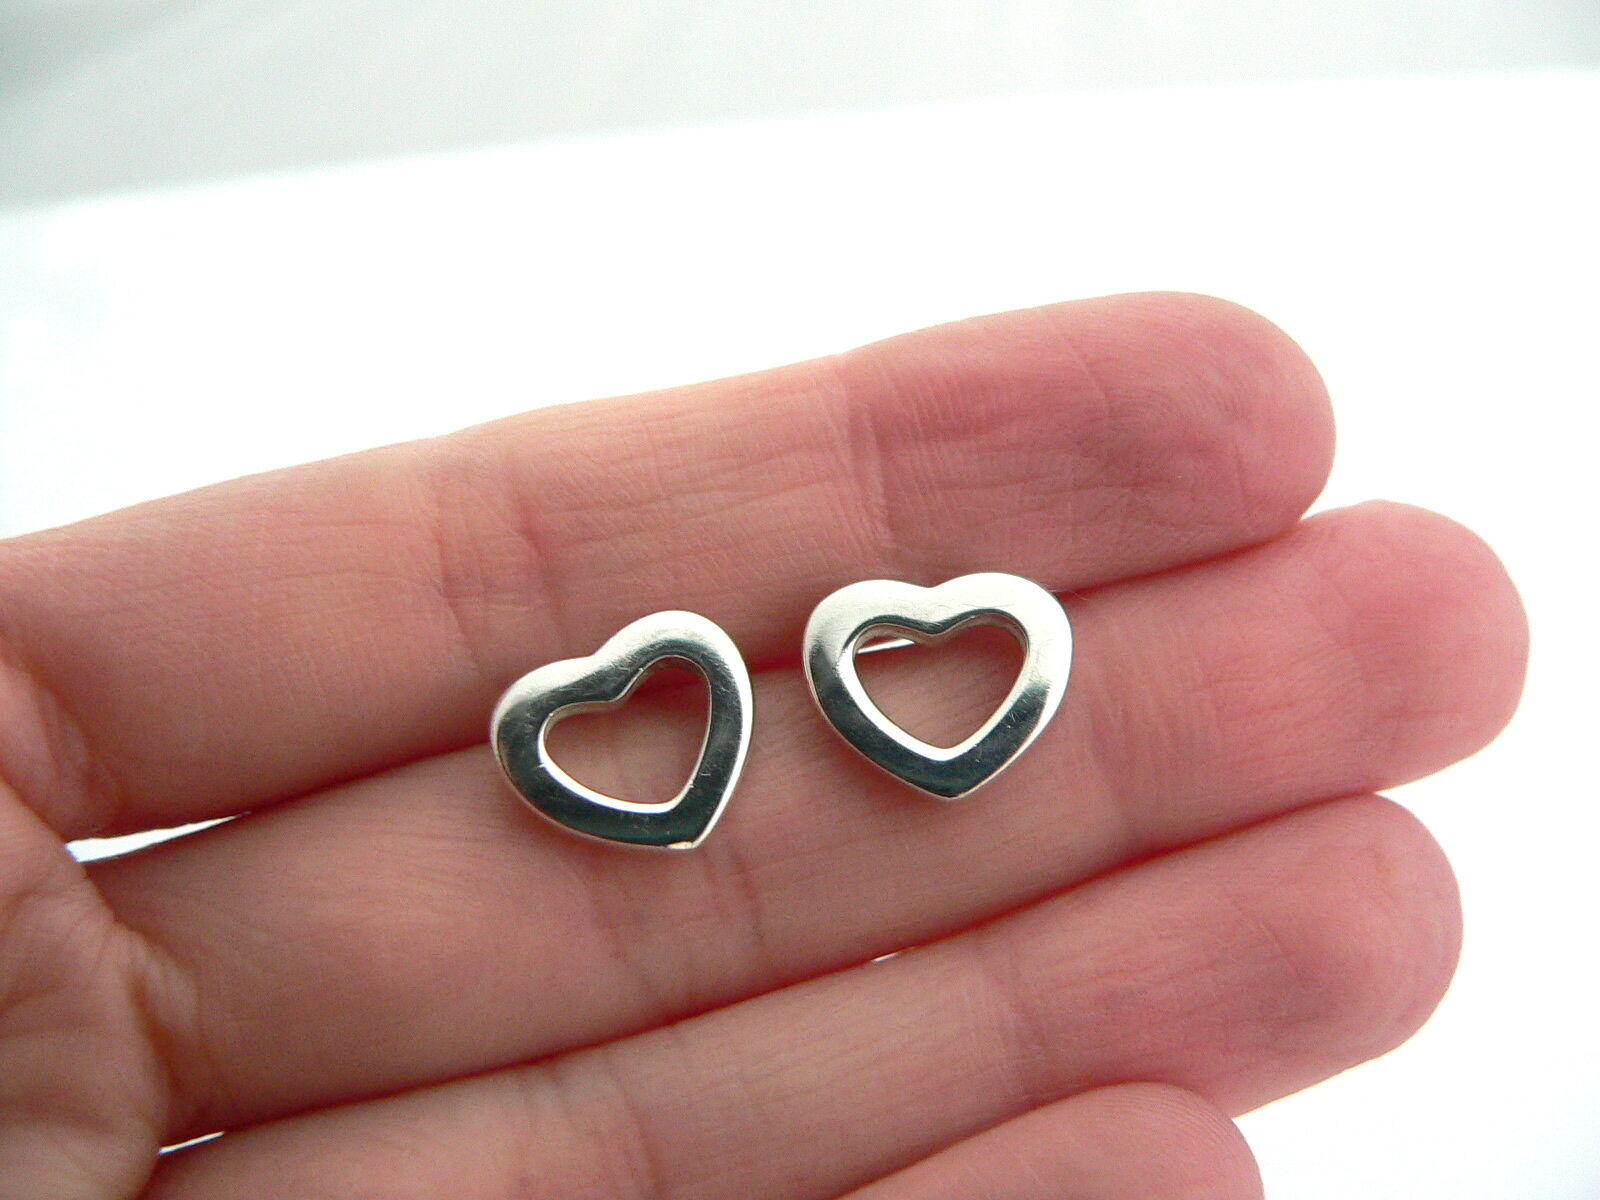 Tiffany & Co Silver Open Heart Earrings Studs Gift Love Rare